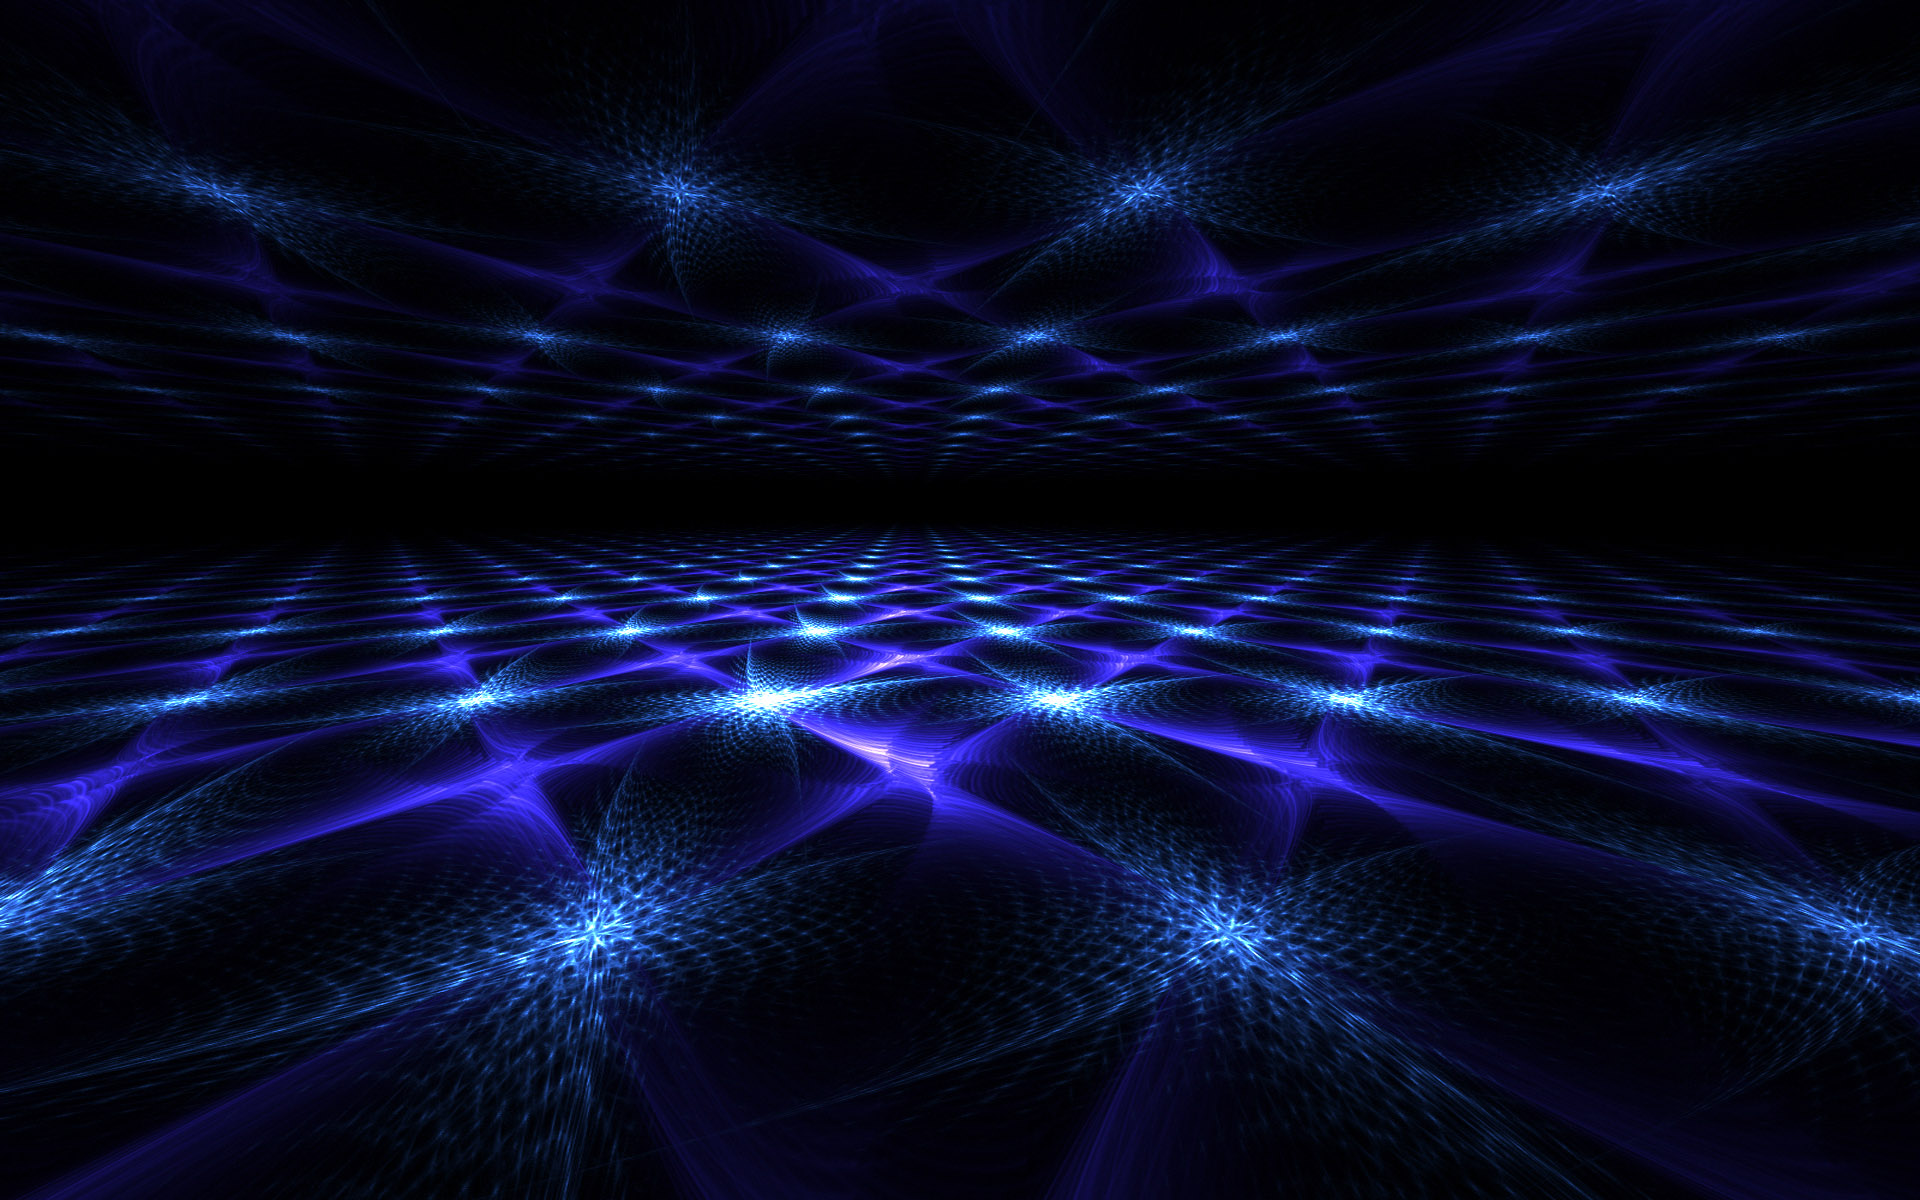 mirror wallpapers fractal blue desktop wallpaper 1920x1200 1920x1200